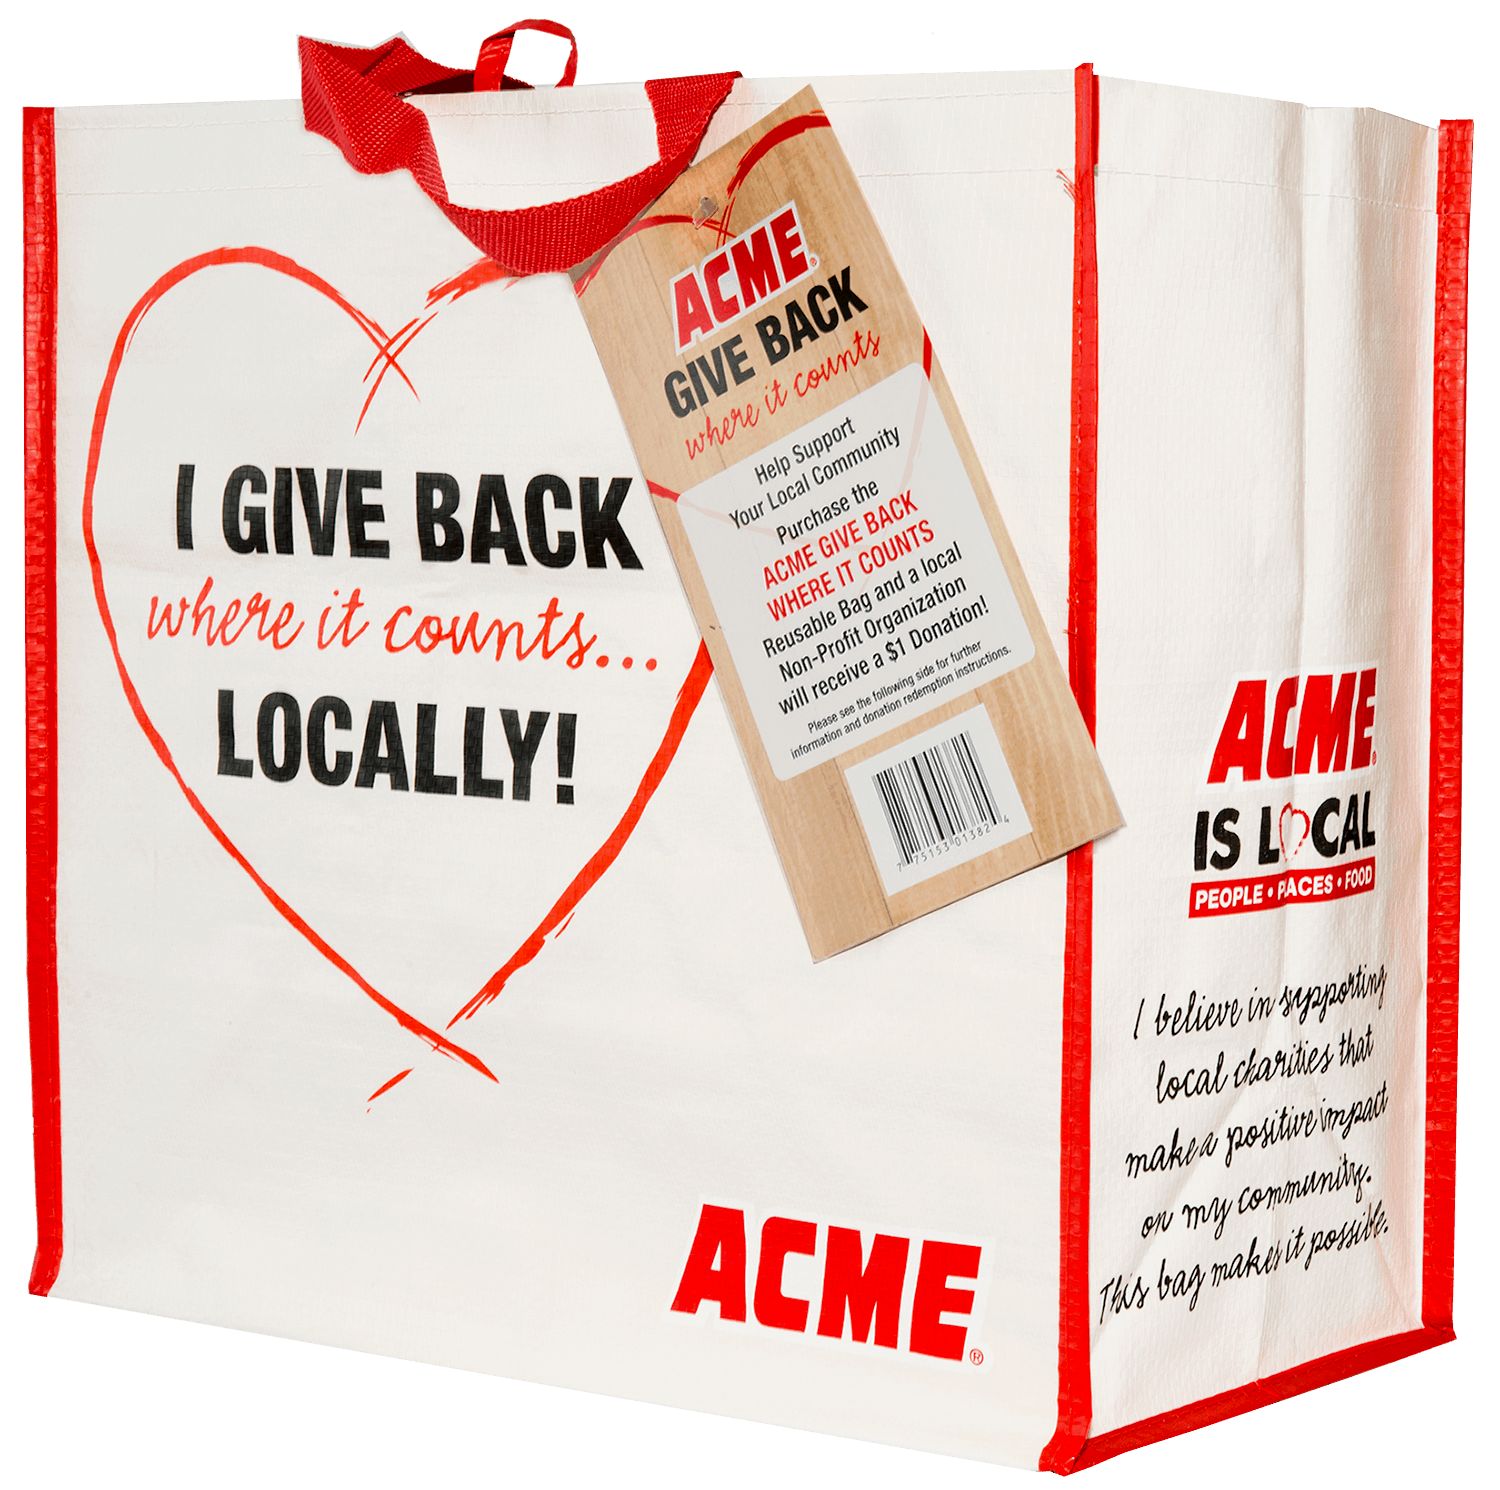 acme right side angle